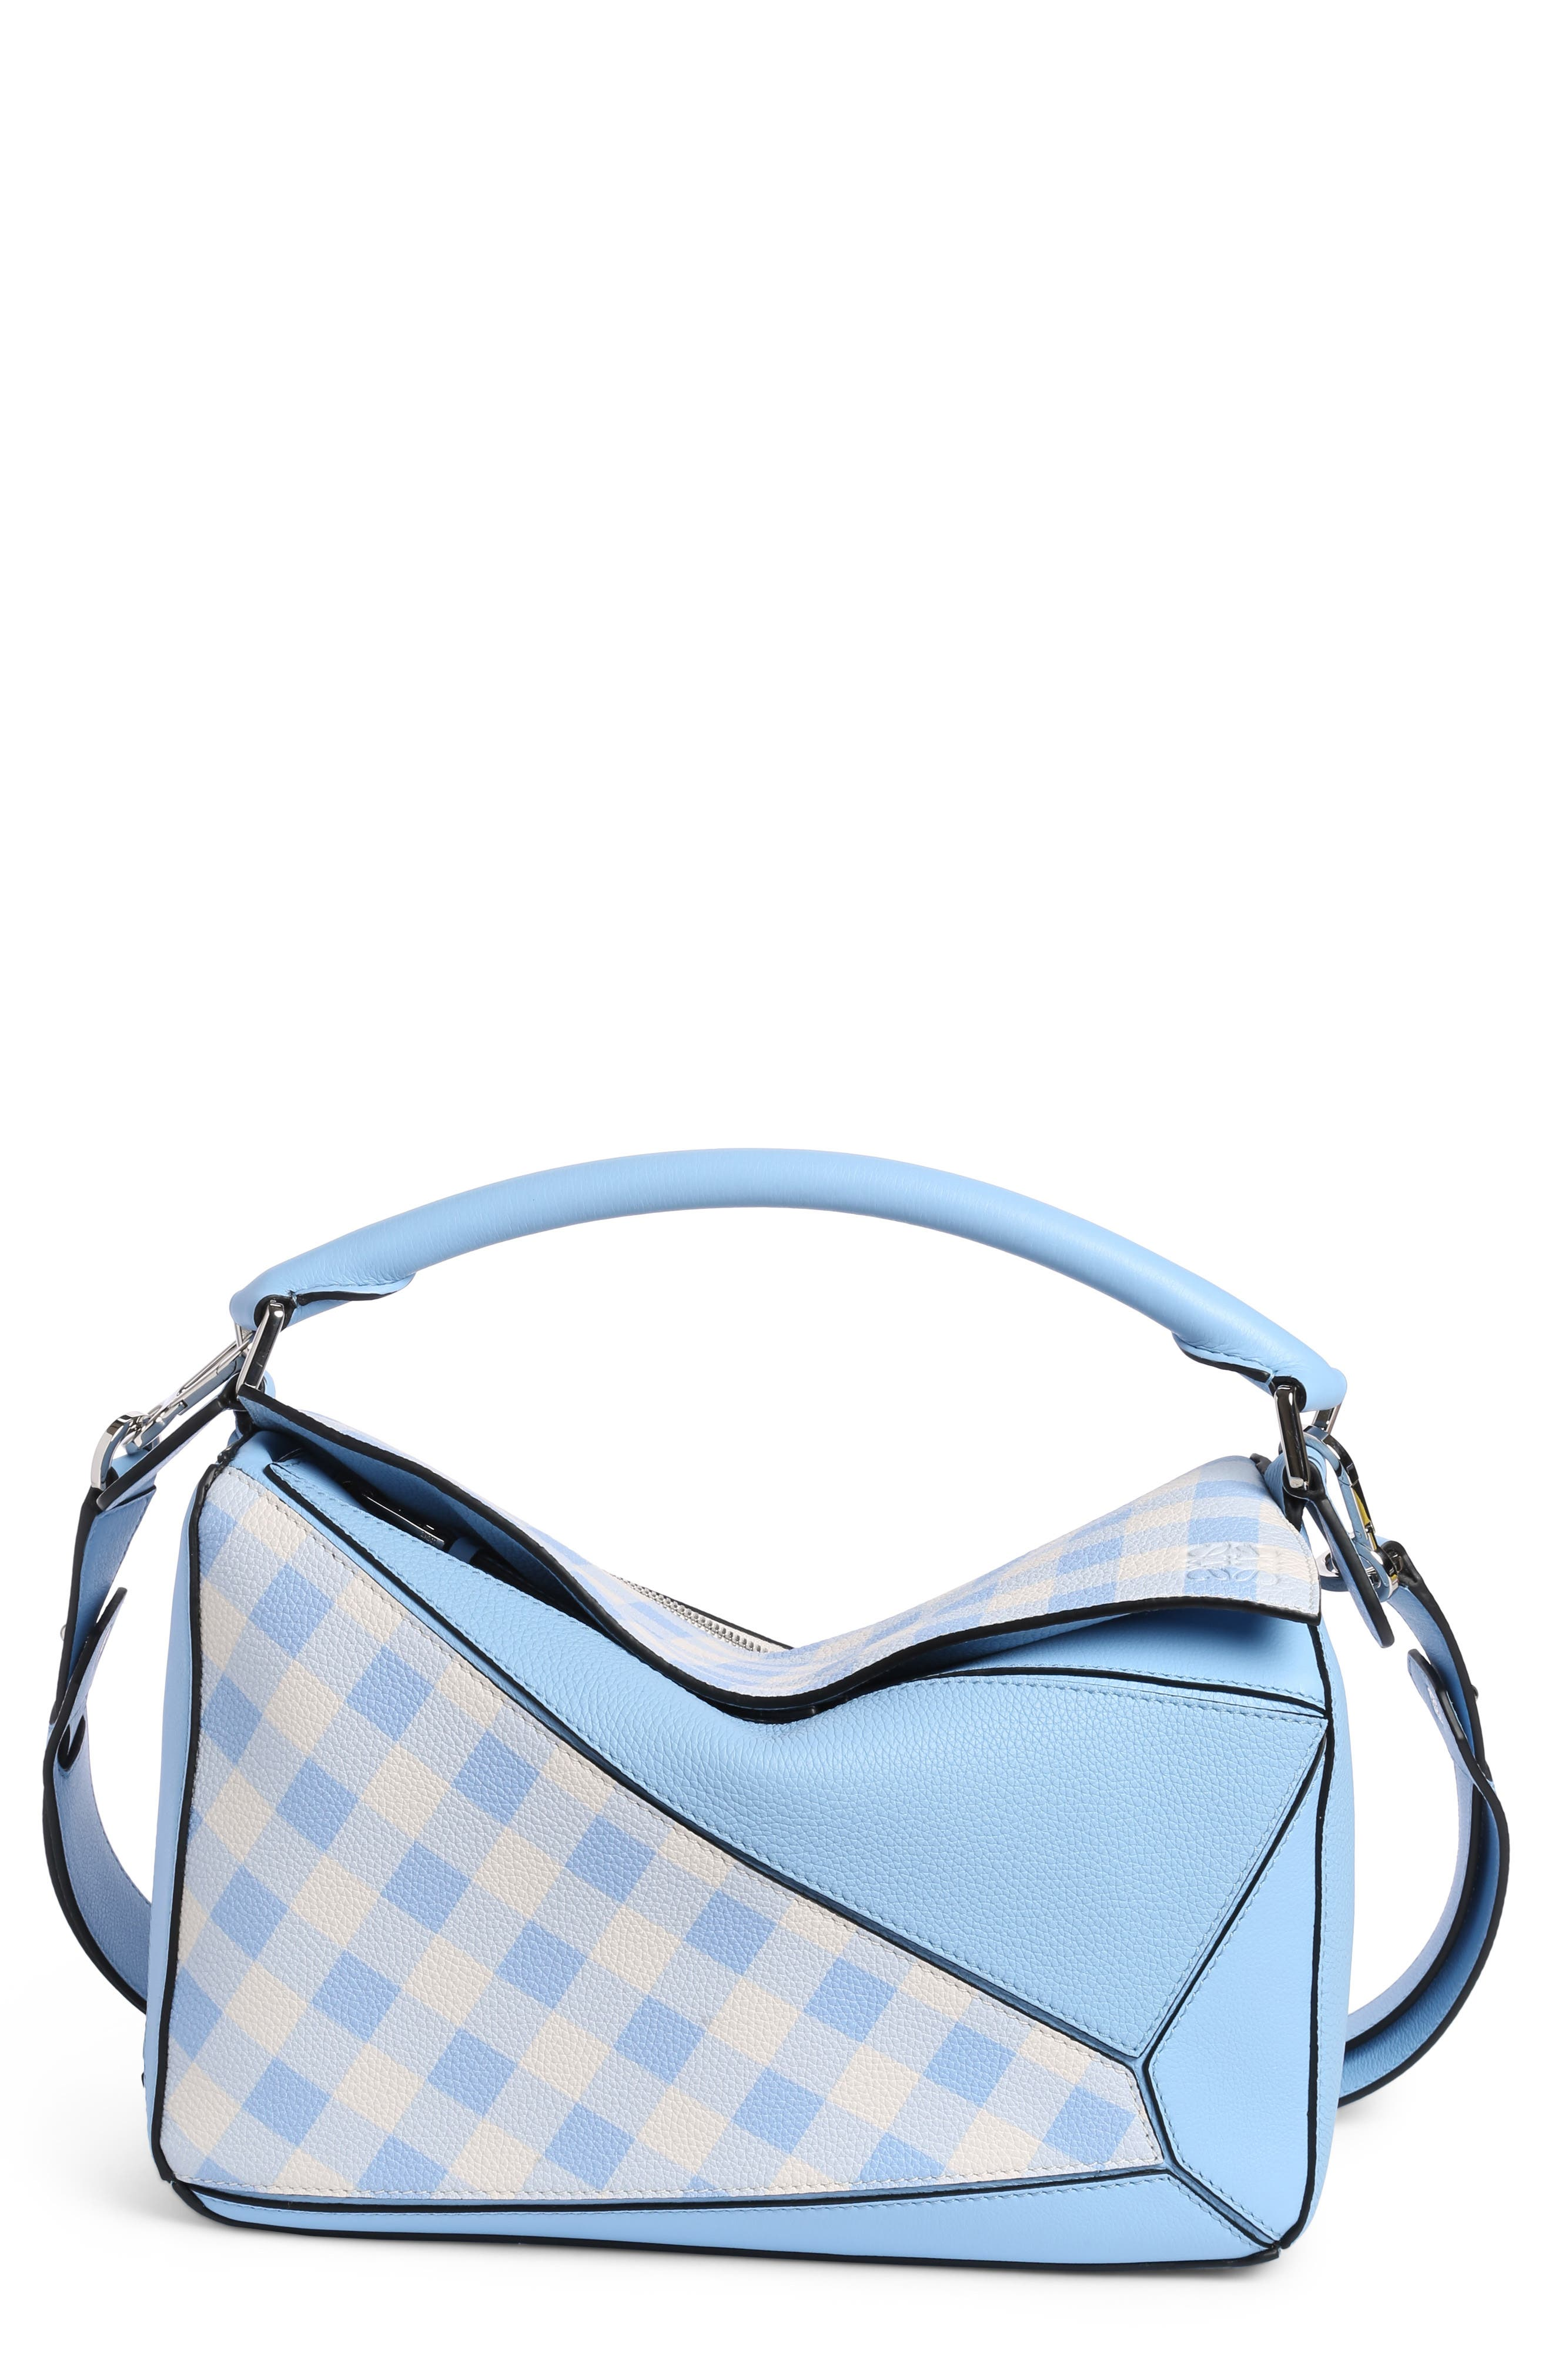 Puzzle Gingham Calfskin Leather Bag,                         Main,                         color, 455